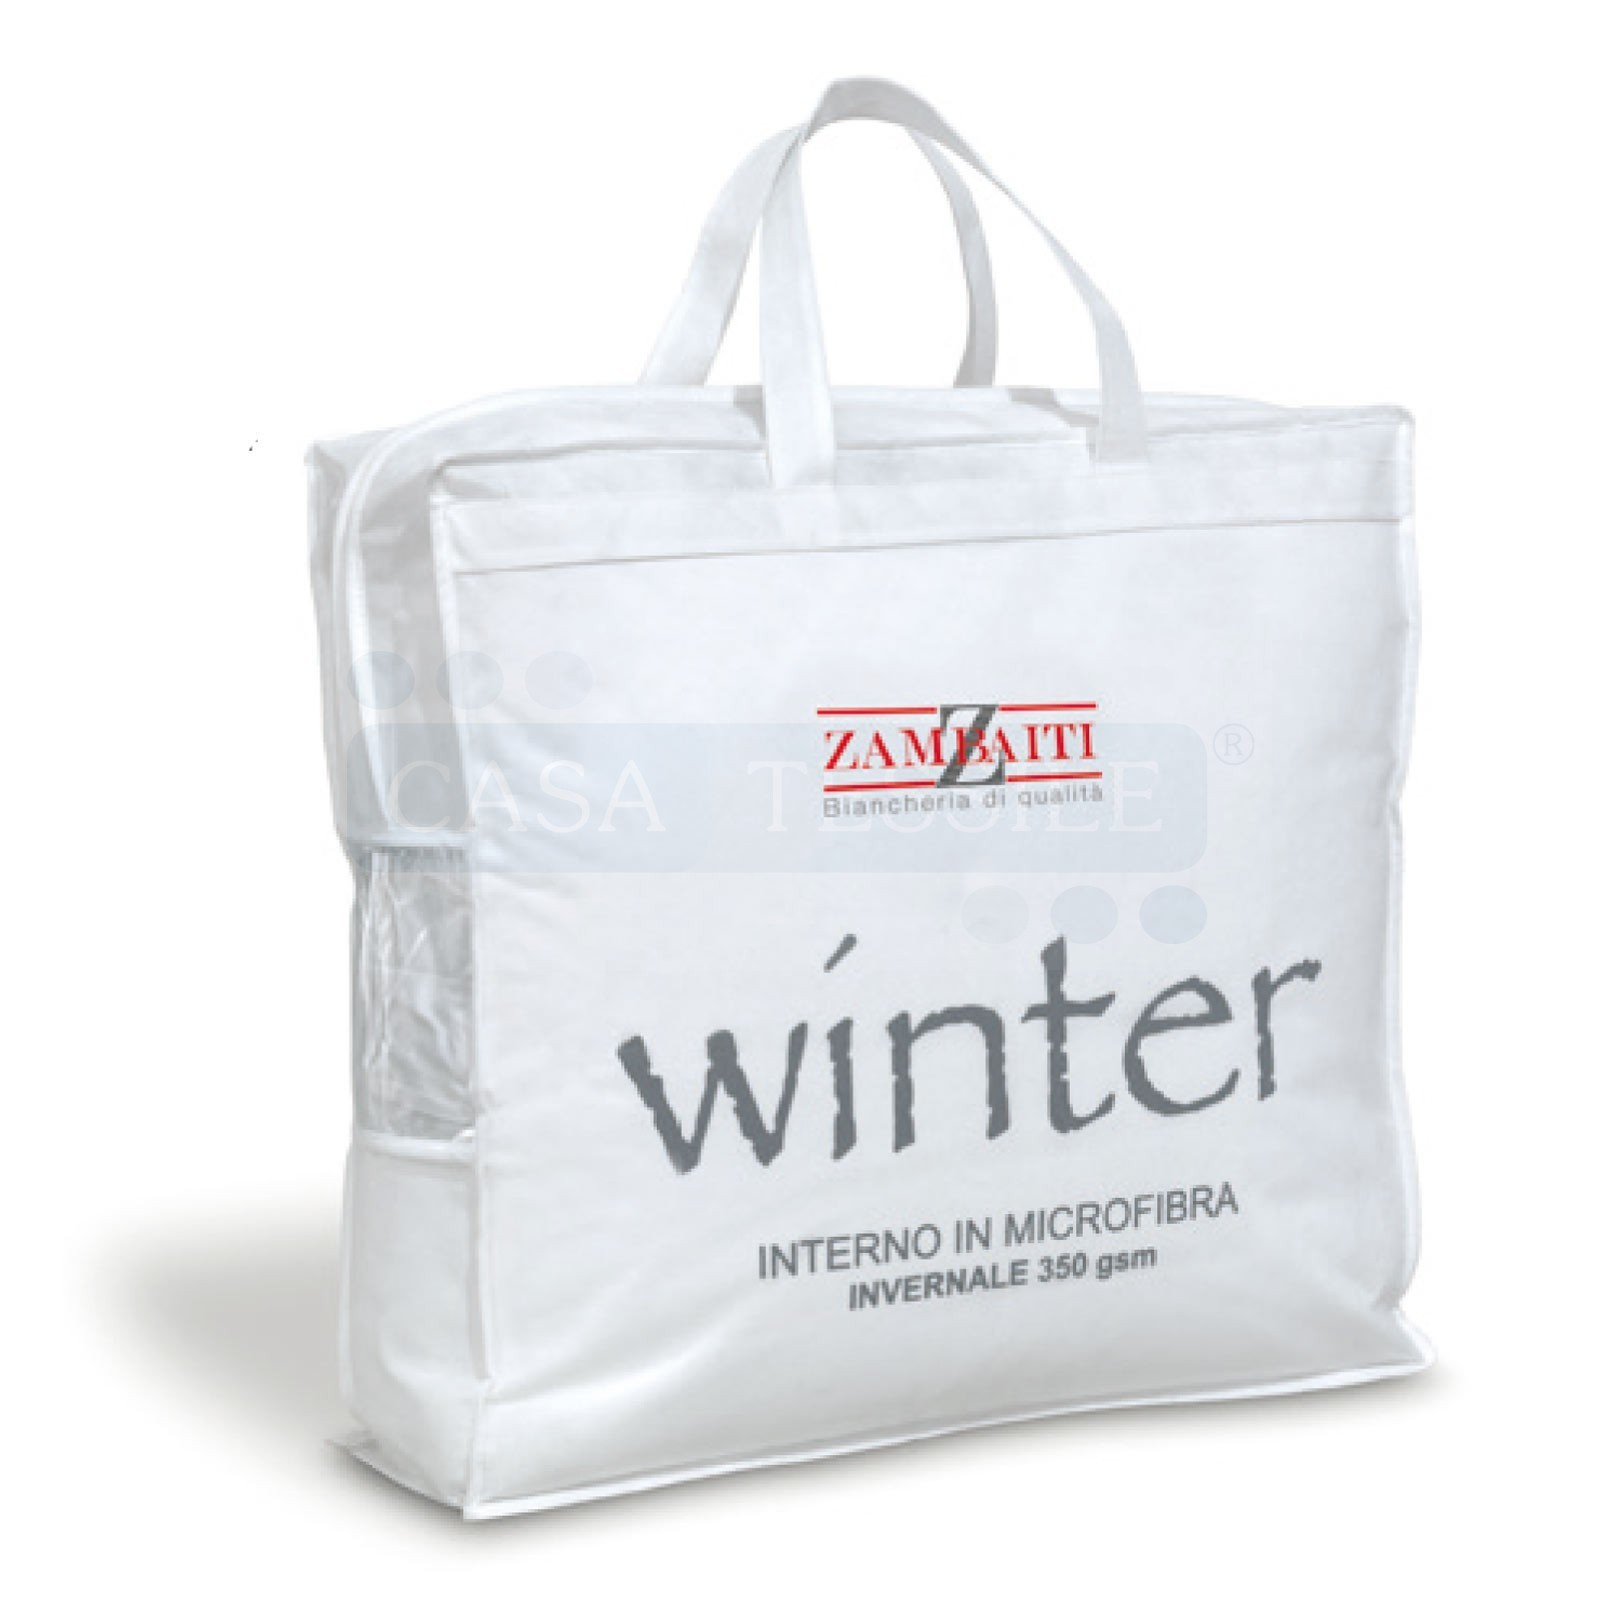 finest selection 18af9 acd20 Piumino sintetico interno invernale WINTER